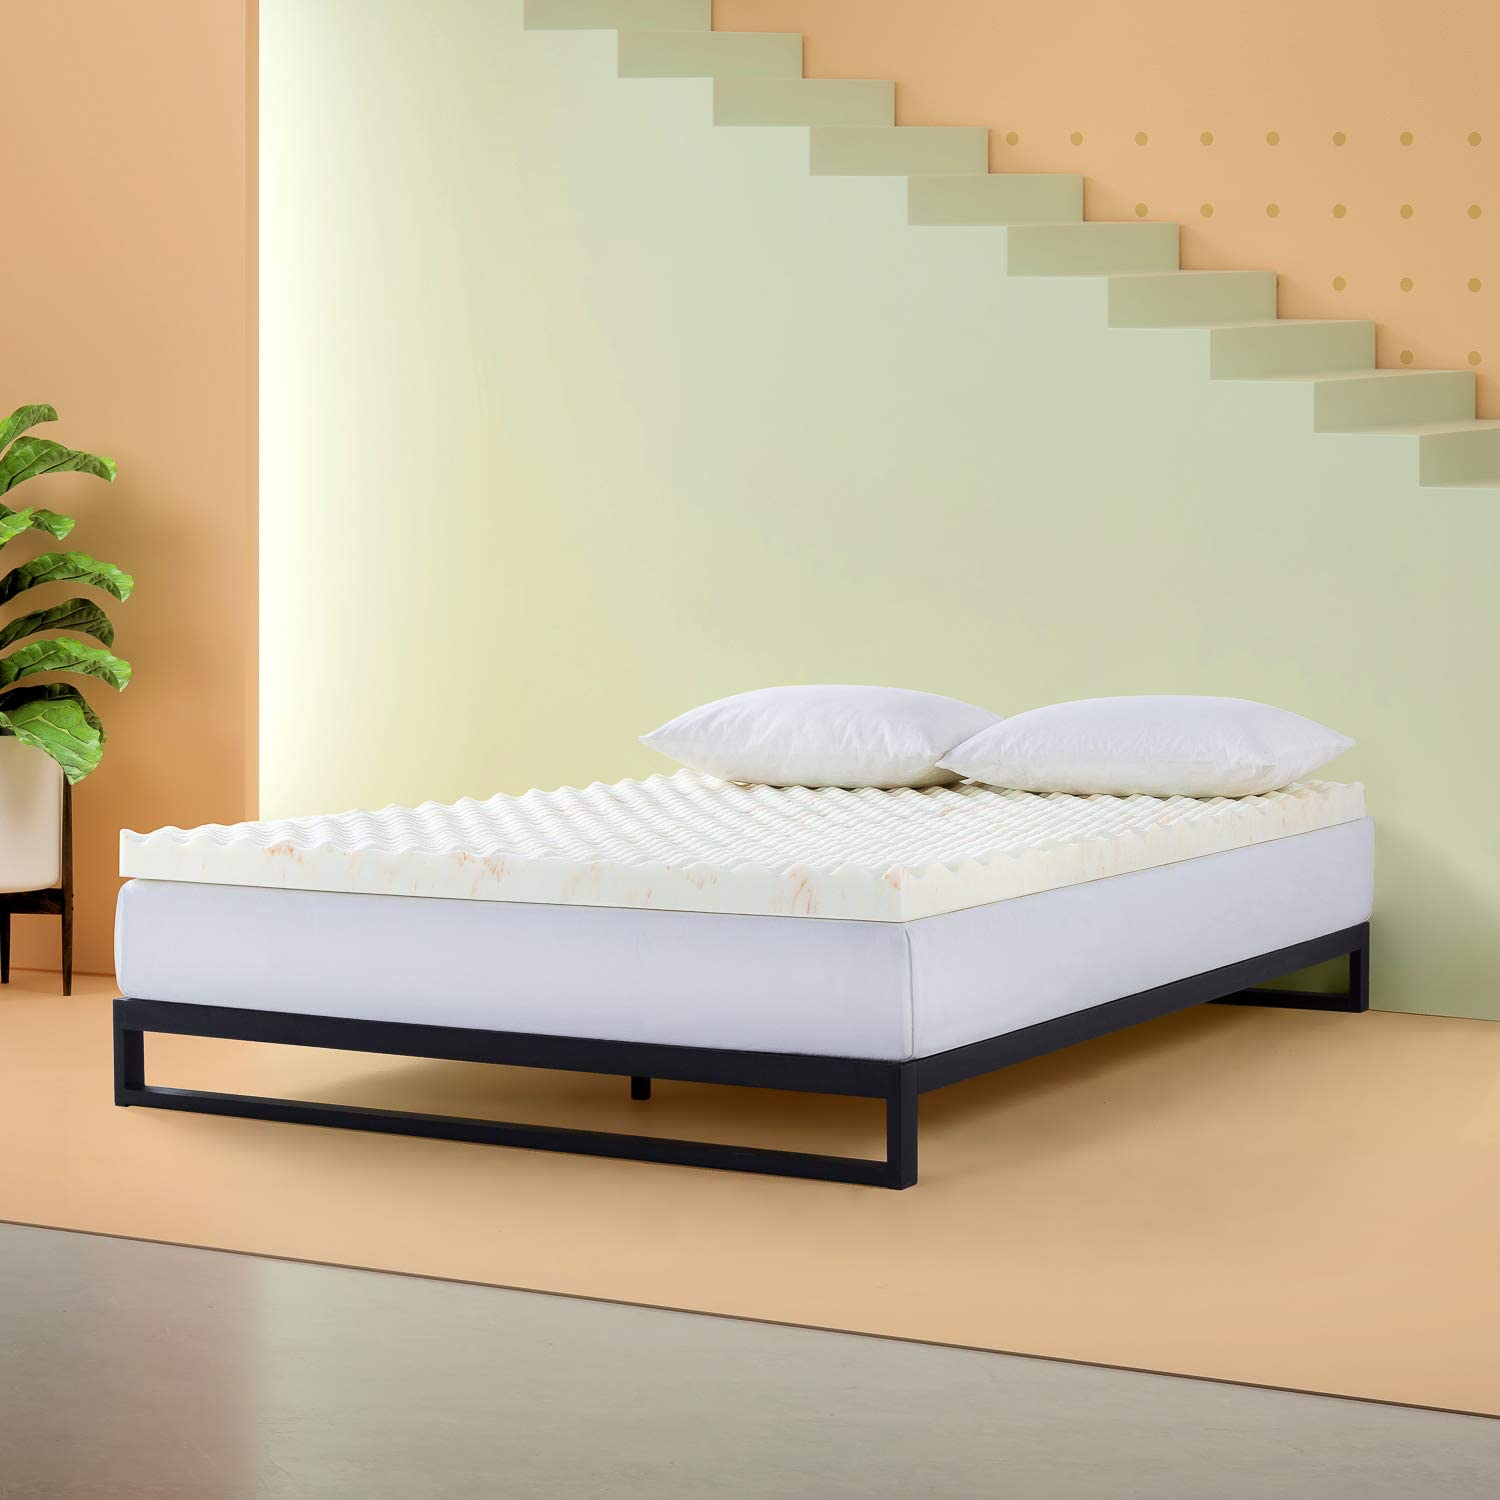 ZINUS 3 Inch Swirl Copper Cooling Memory Foam Mattress Topper/Antimicrobial & Odor Resistant/Airflow Design, King